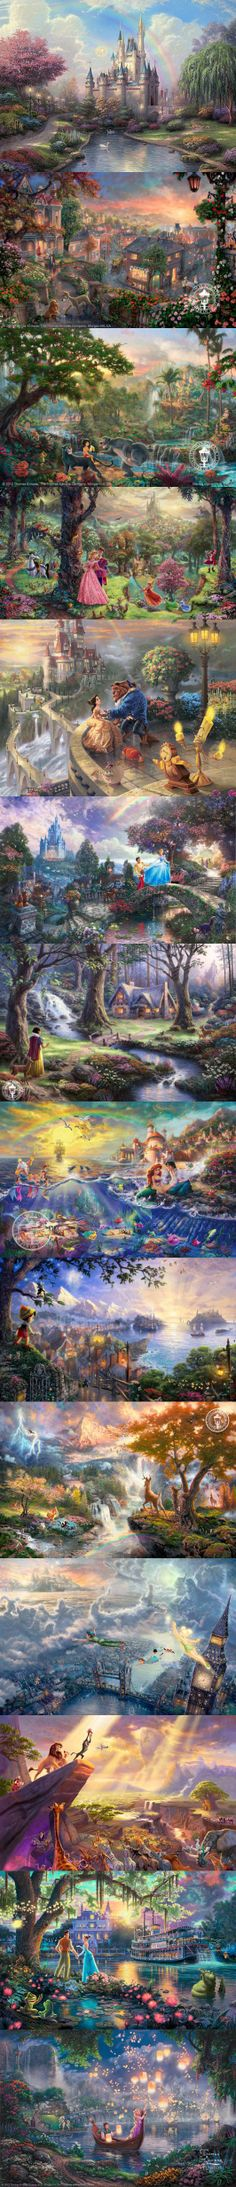 "Thomas Kinkade ""Disney Dreams"" collection"